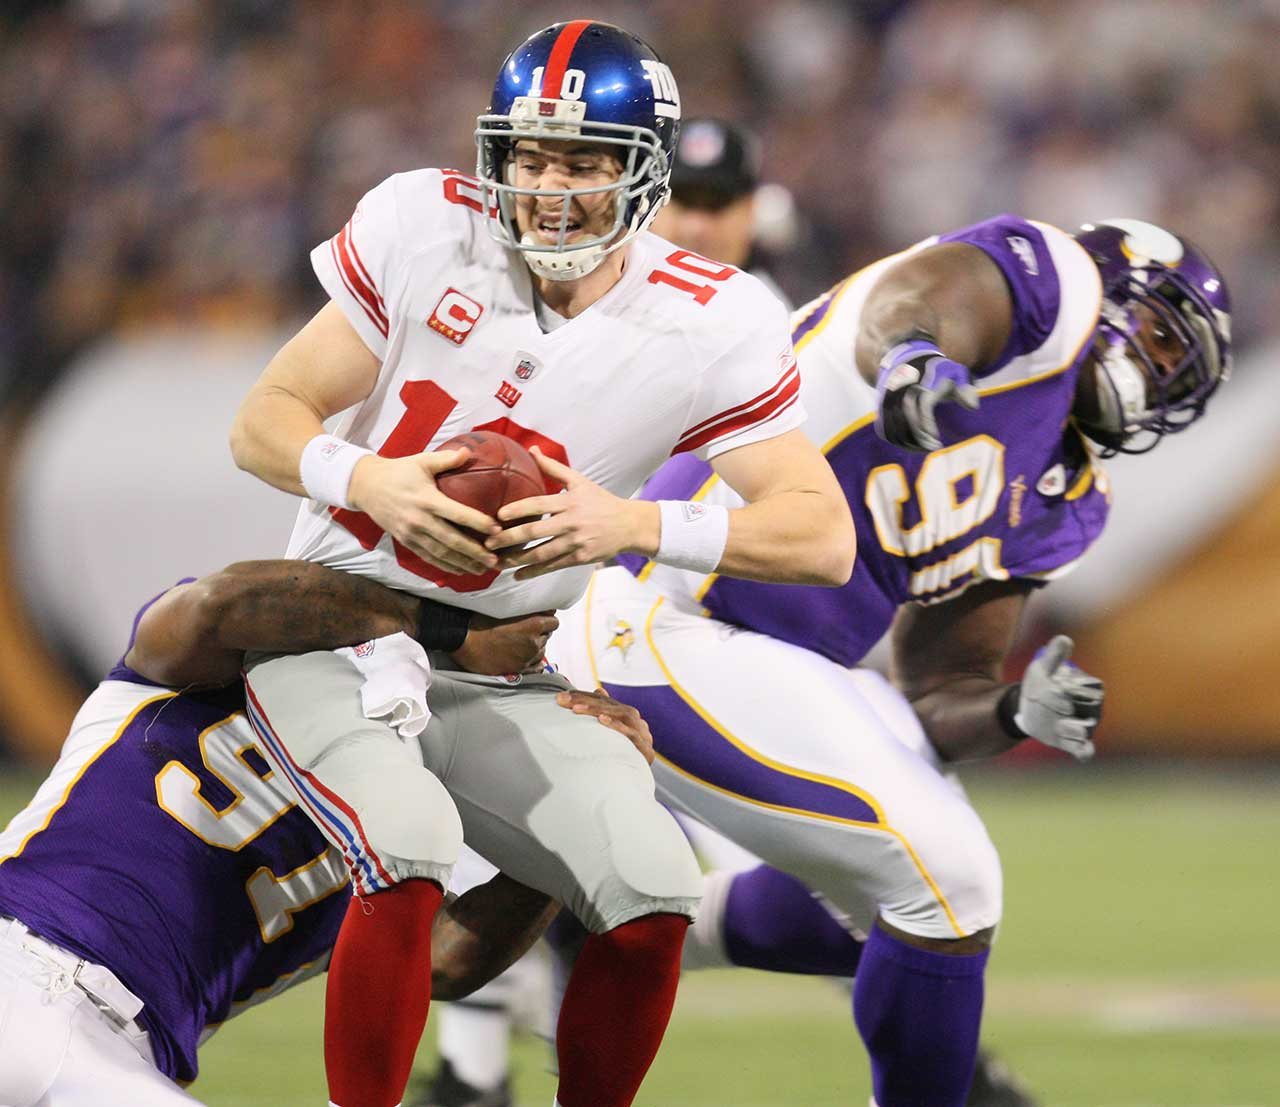 Eli Manning has played on his birthday once, losing 44-7 to Brett Favre (four TD passes) and the Vikings on a day when Eli completed 17 of 23 passes for 141 yards and one interception. The Giants lost for the eighth time in 11 games and missed the playoffs. It was the worst passing yardage game of the year for Eli, who turned 29 and was replaced by David Carr in the second half.